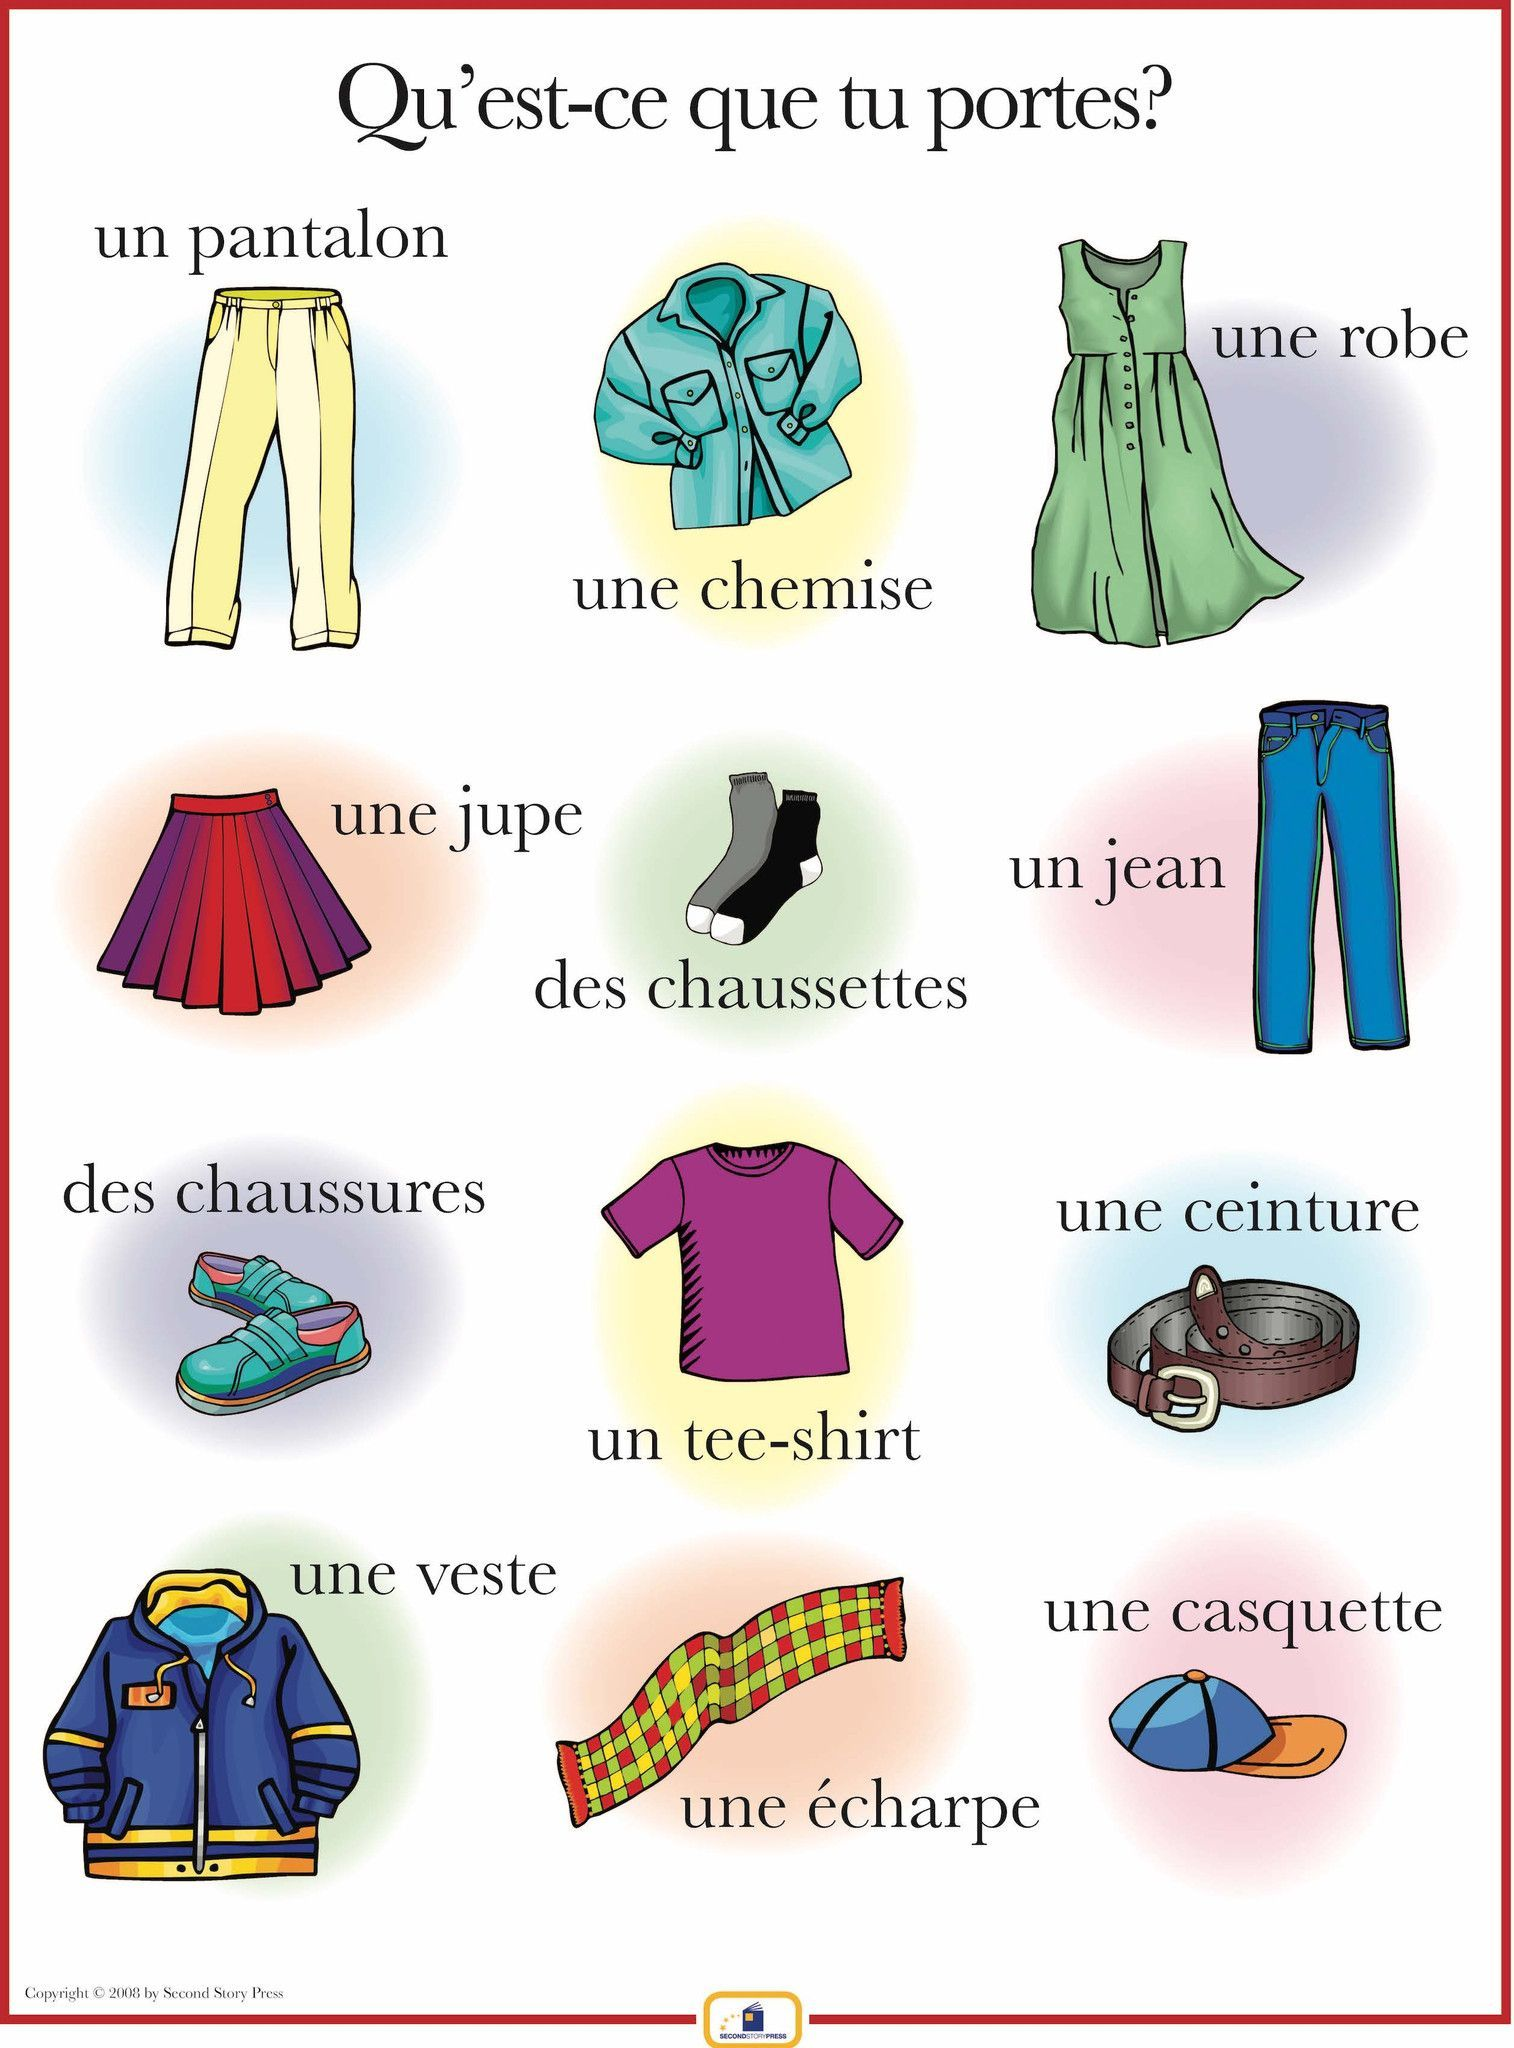 Chapter 7 This Pin Shows The French Name For Everyday